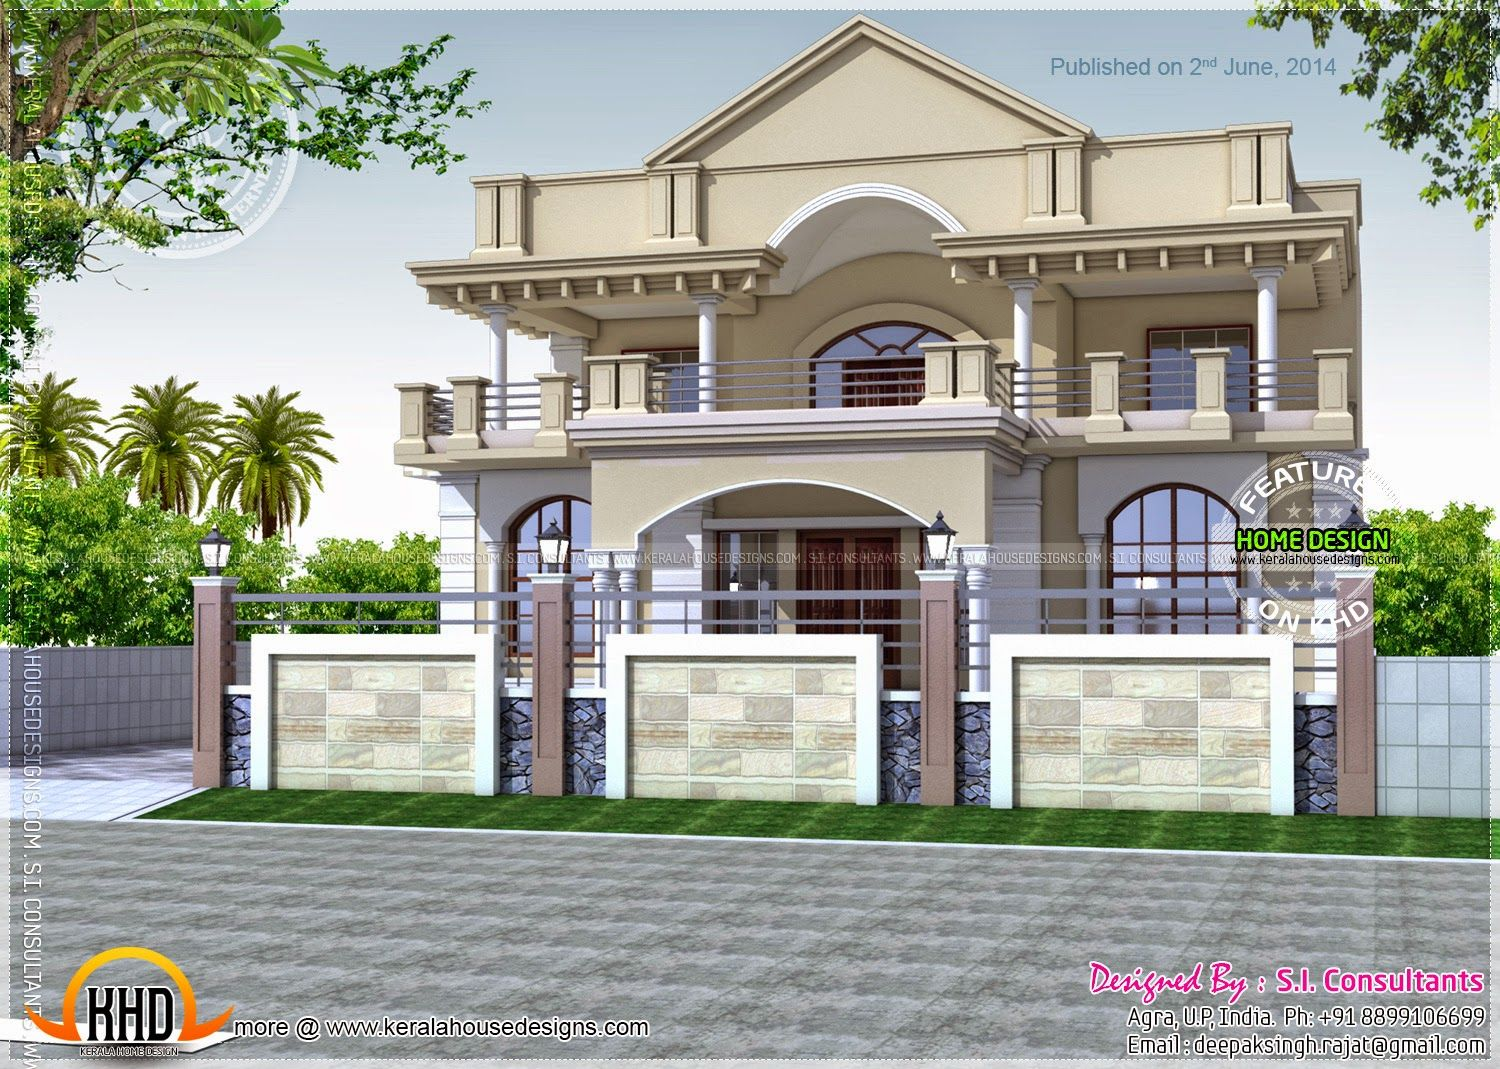 North indian exterior house indian house plans Small indian home designs photos